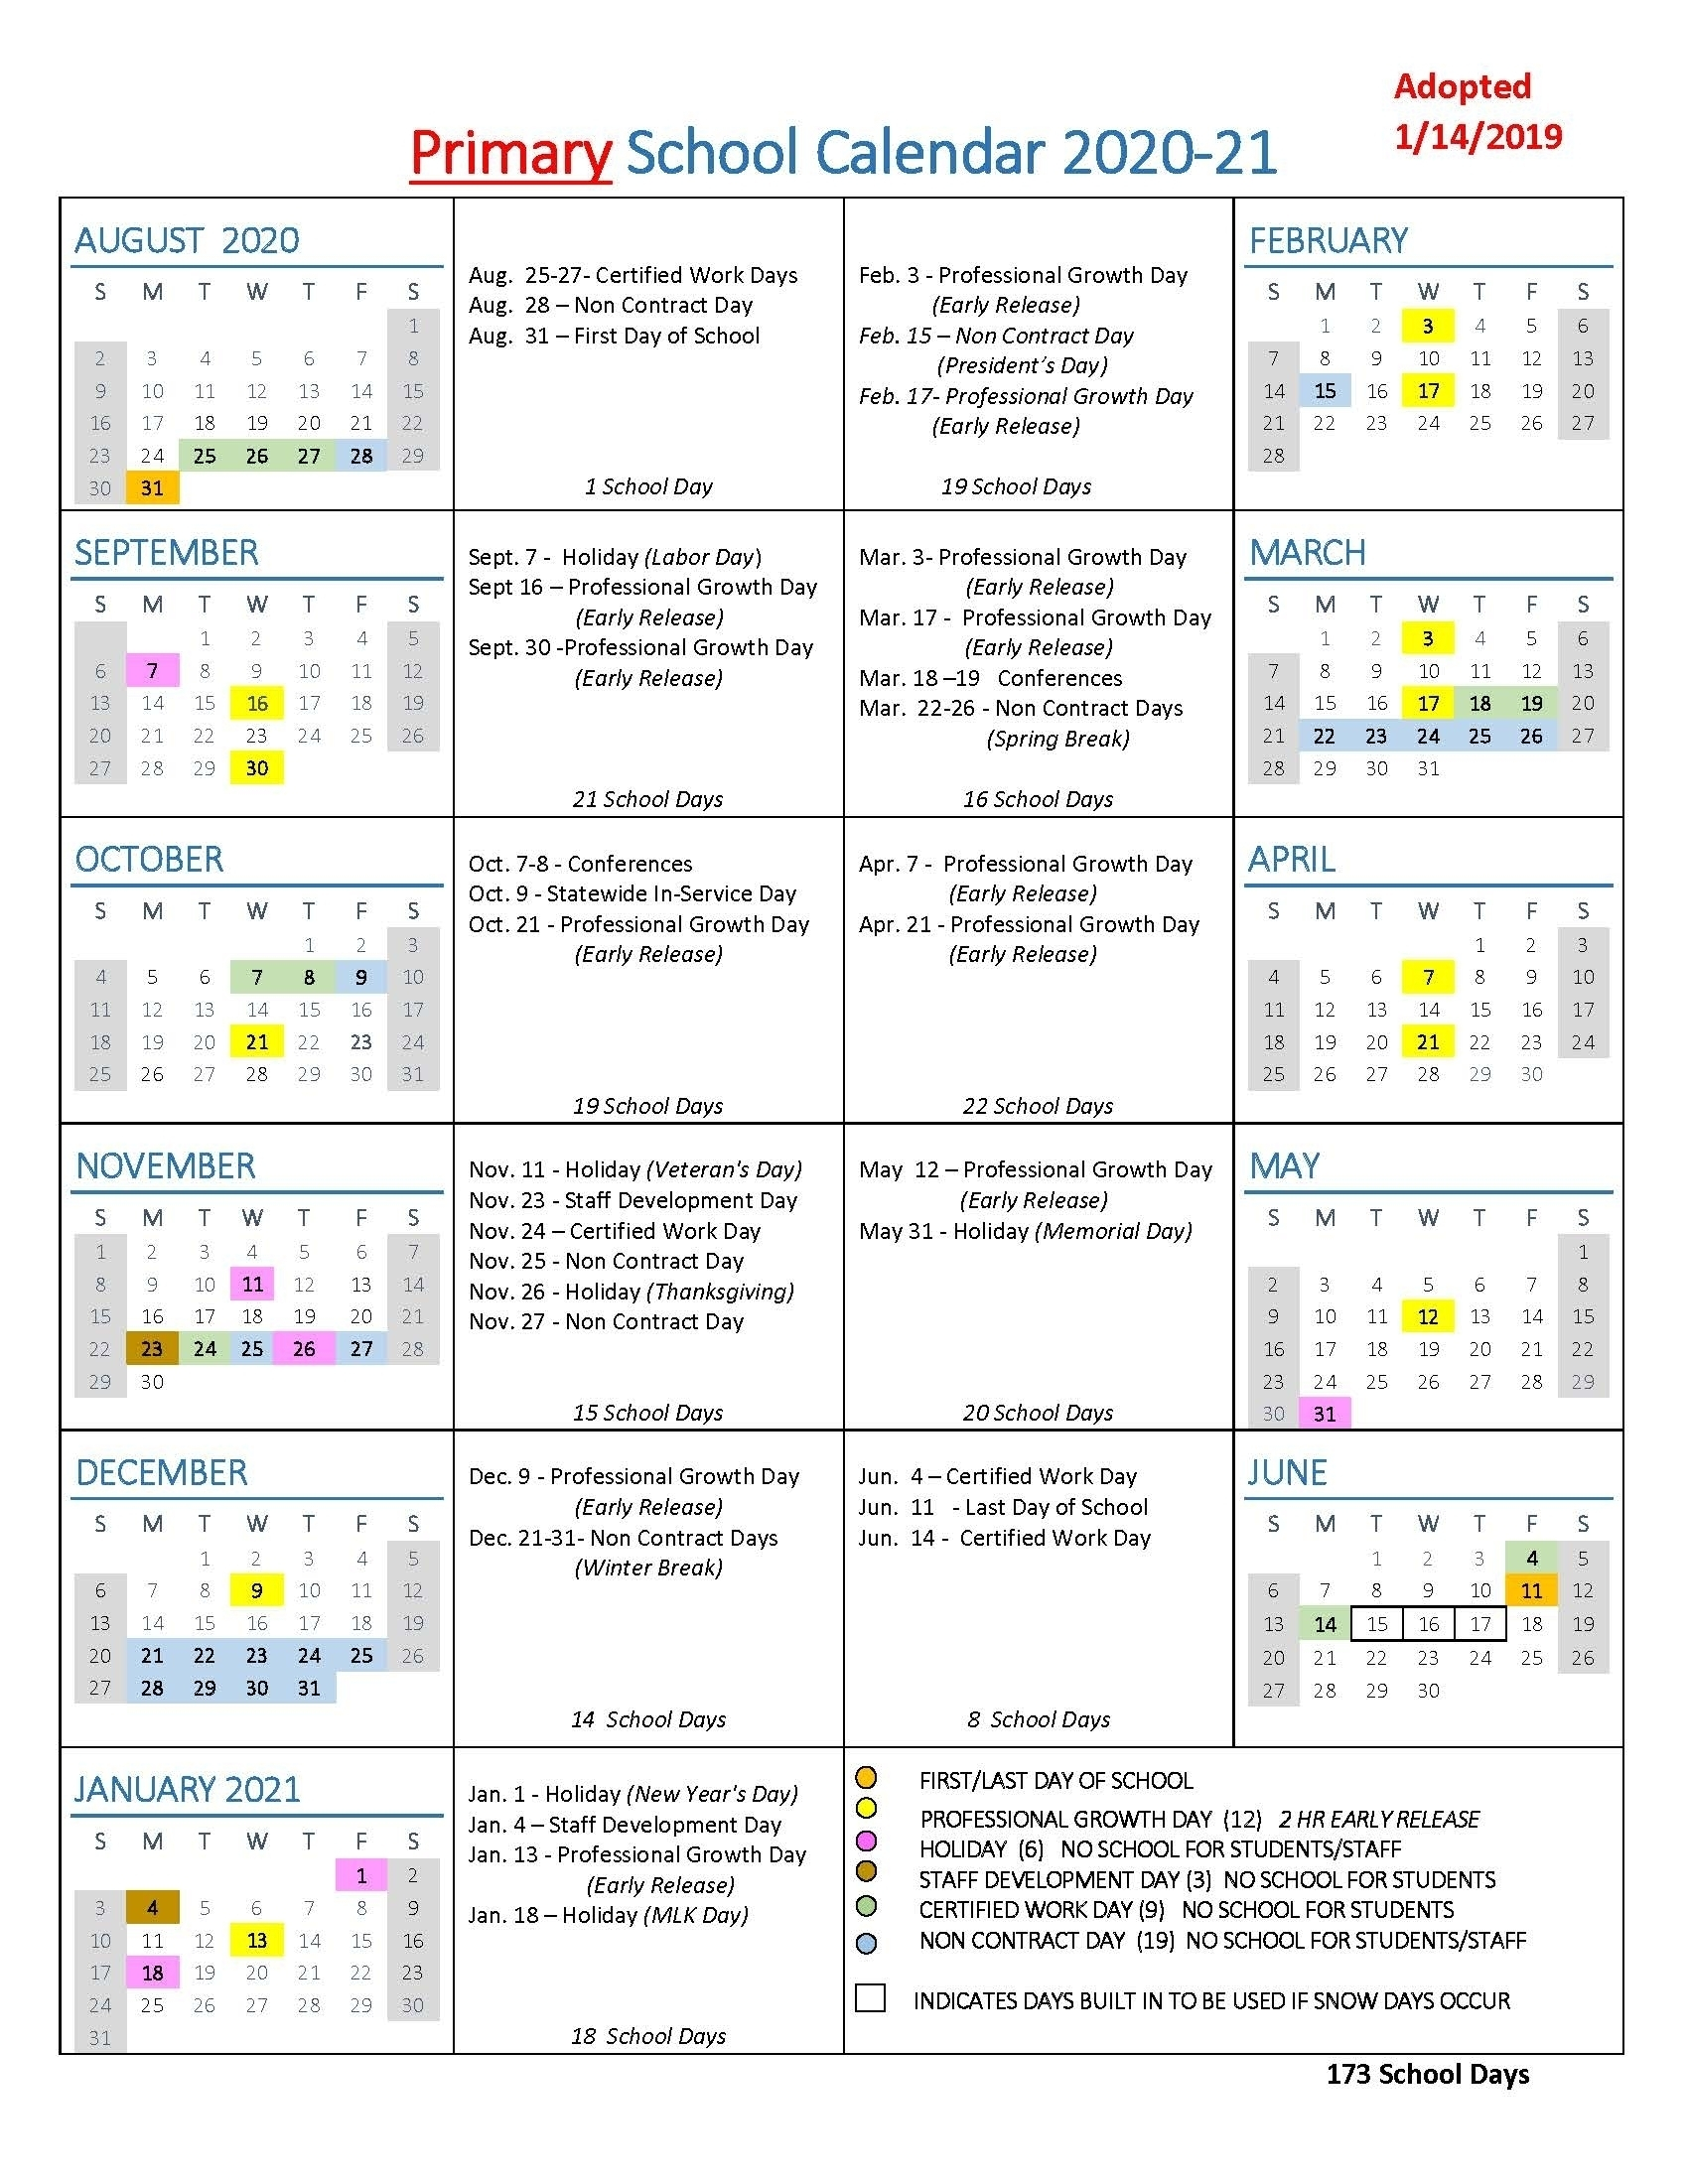 Calendar With All The Special Days In 2020 - Calendar with What Are The Special Days In 2020